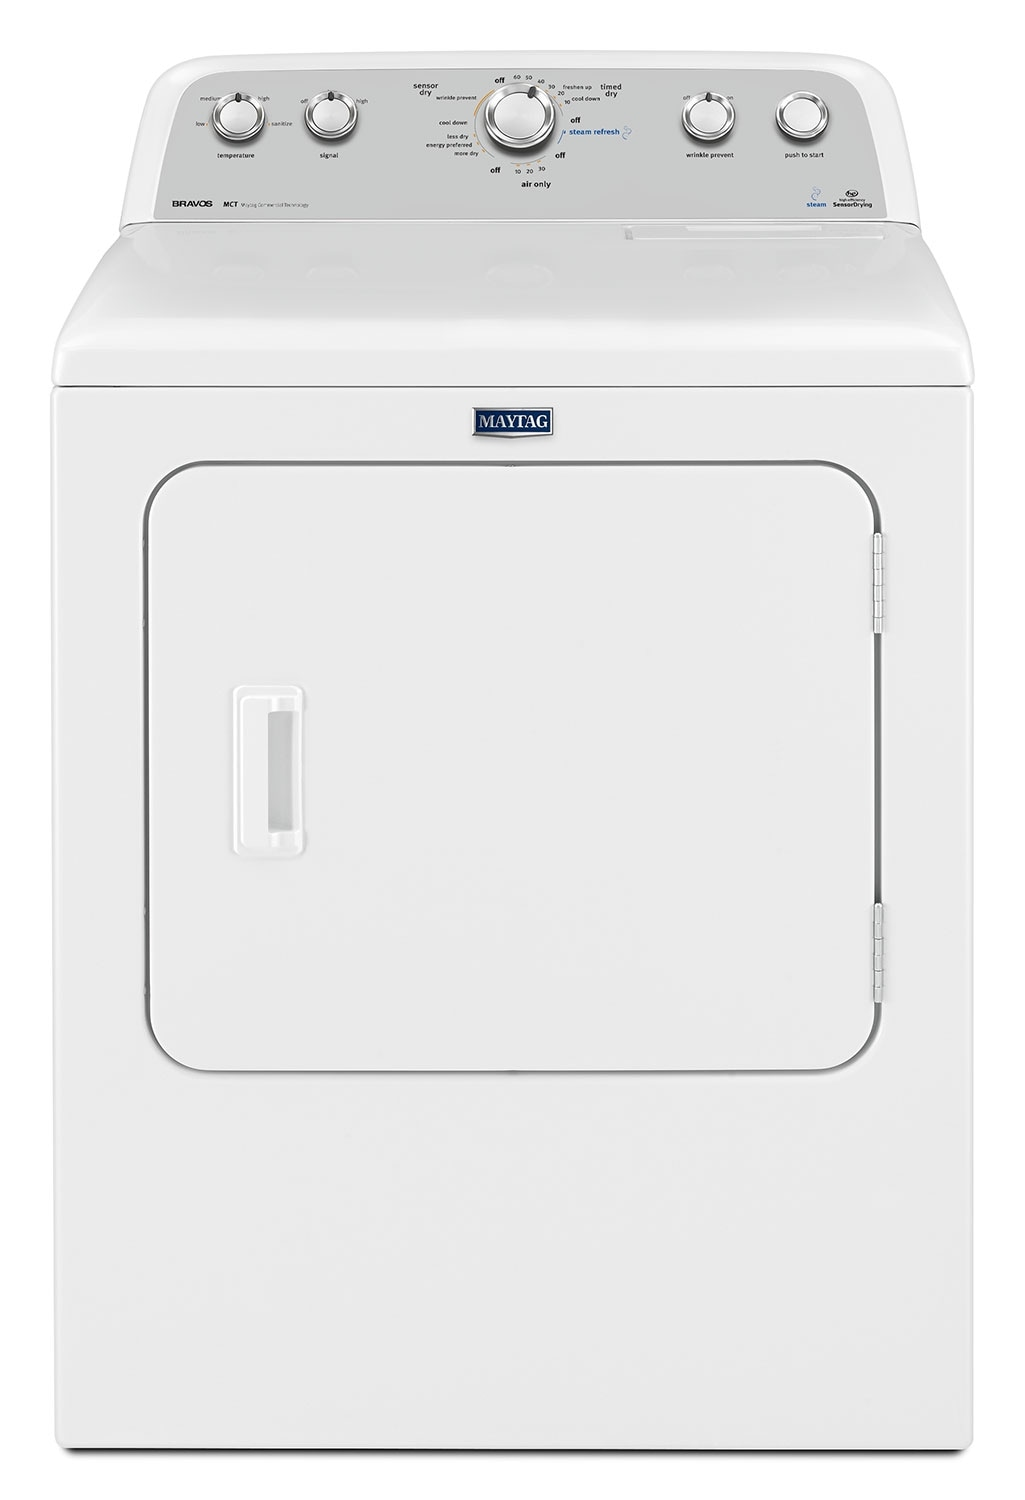 Maytag White Gas Dryer (7.0 Cu. Ft.) - MGDX6STBW